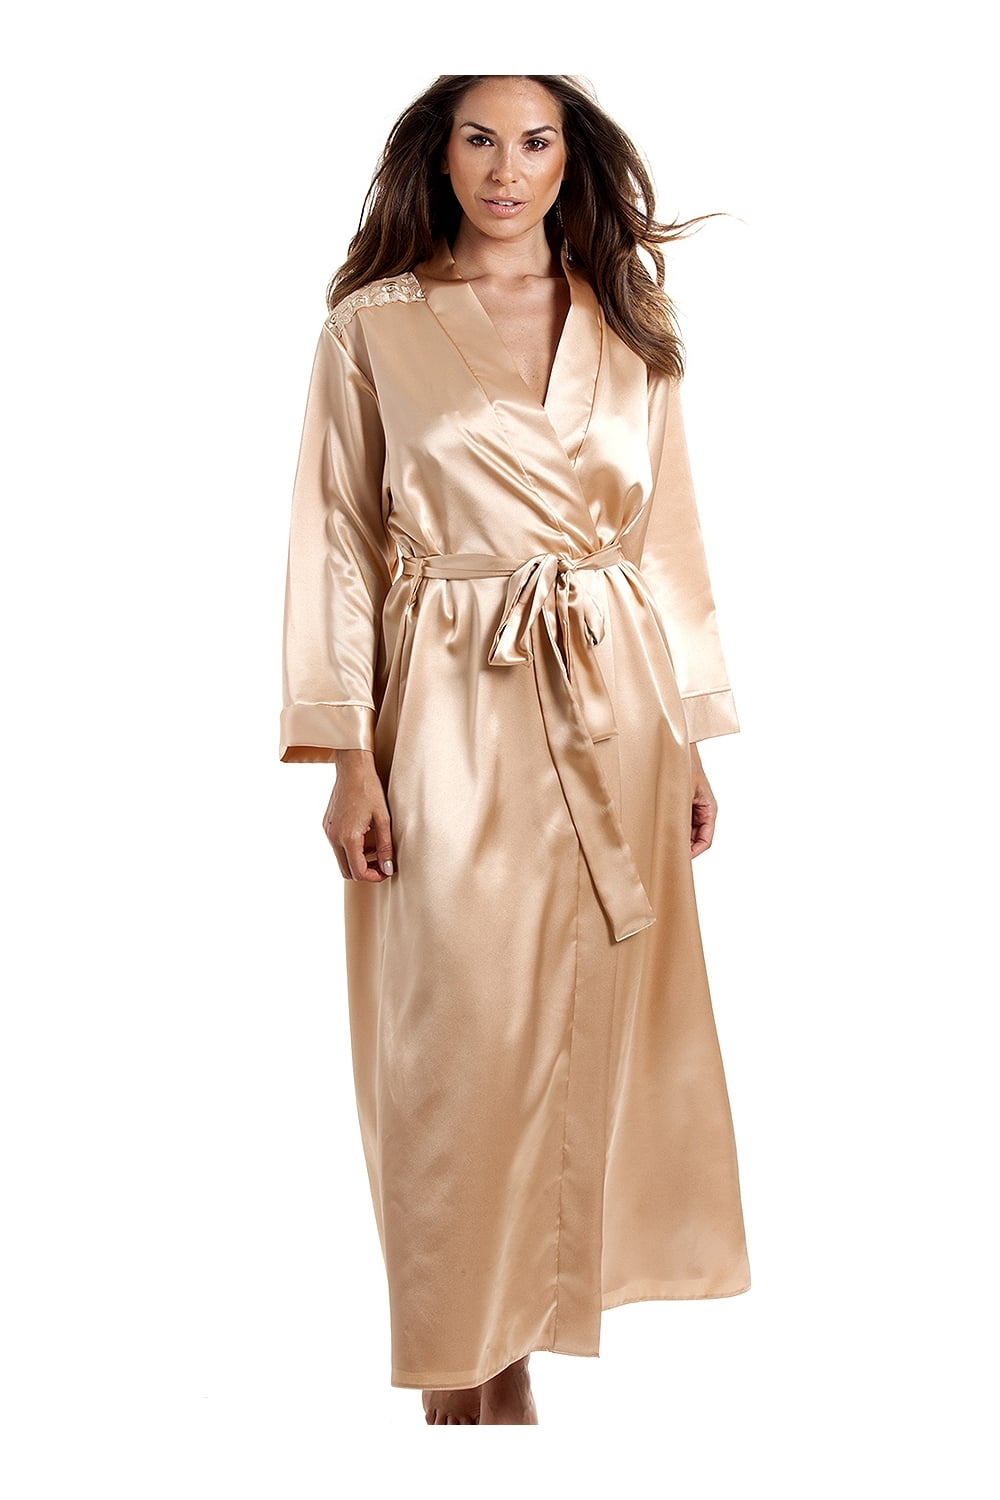 Camille Womens Luxury Gold Satin Dressing gown 226d179bf